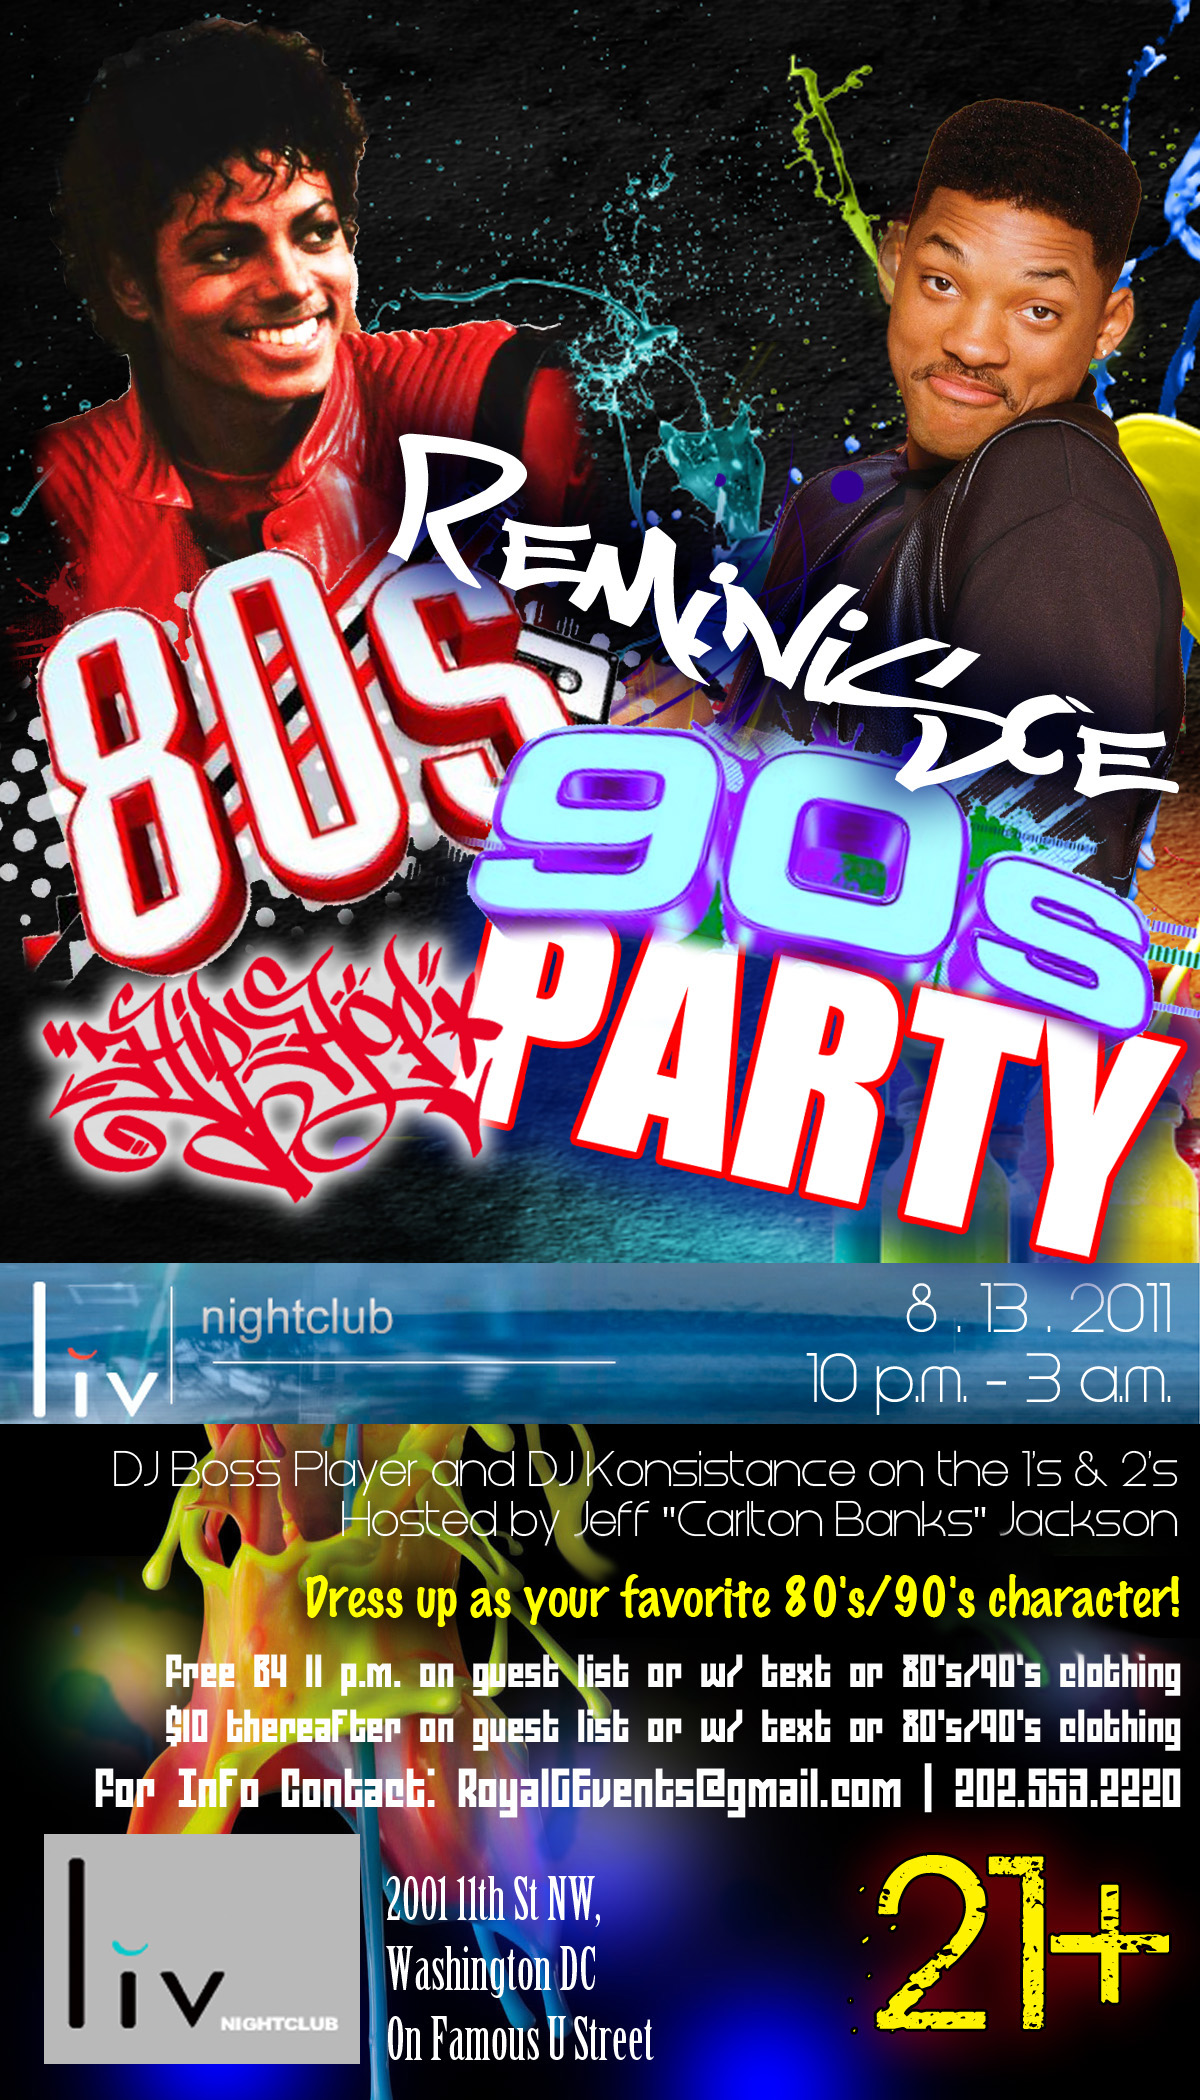 House party nyc s new 90s themed weekly hip hop event for House music 80 s and 90 s